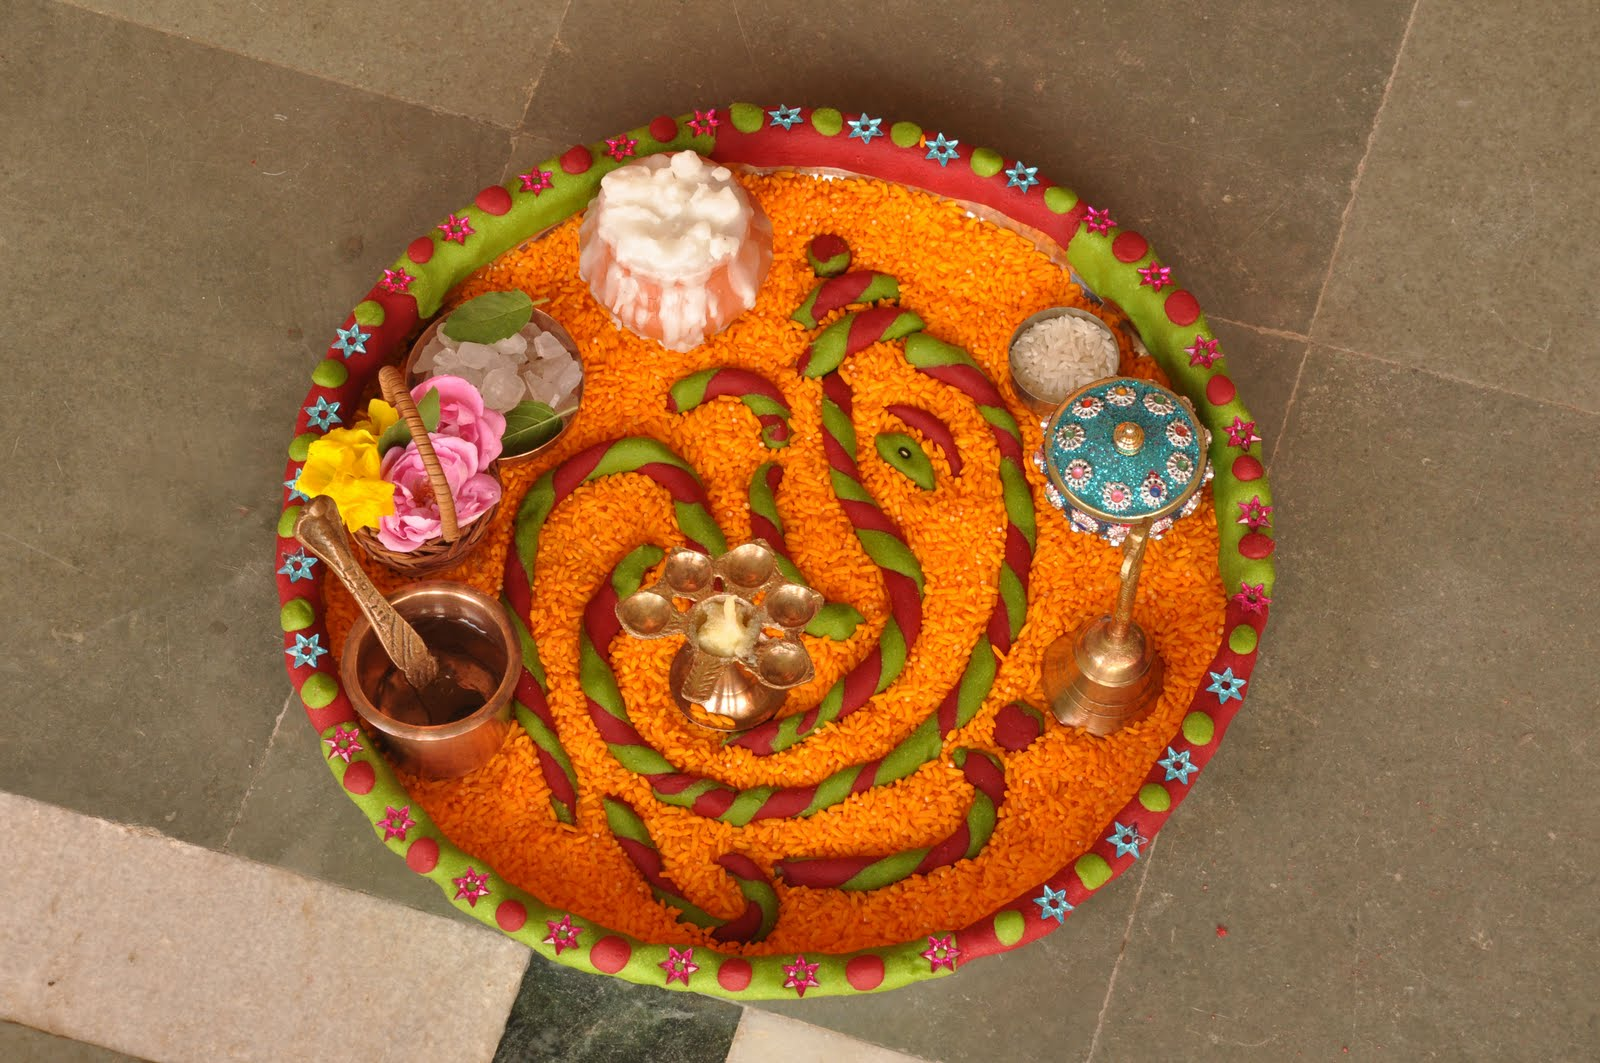 Mammy bachcha aarati thali competition for Aarti thali decoration with grains